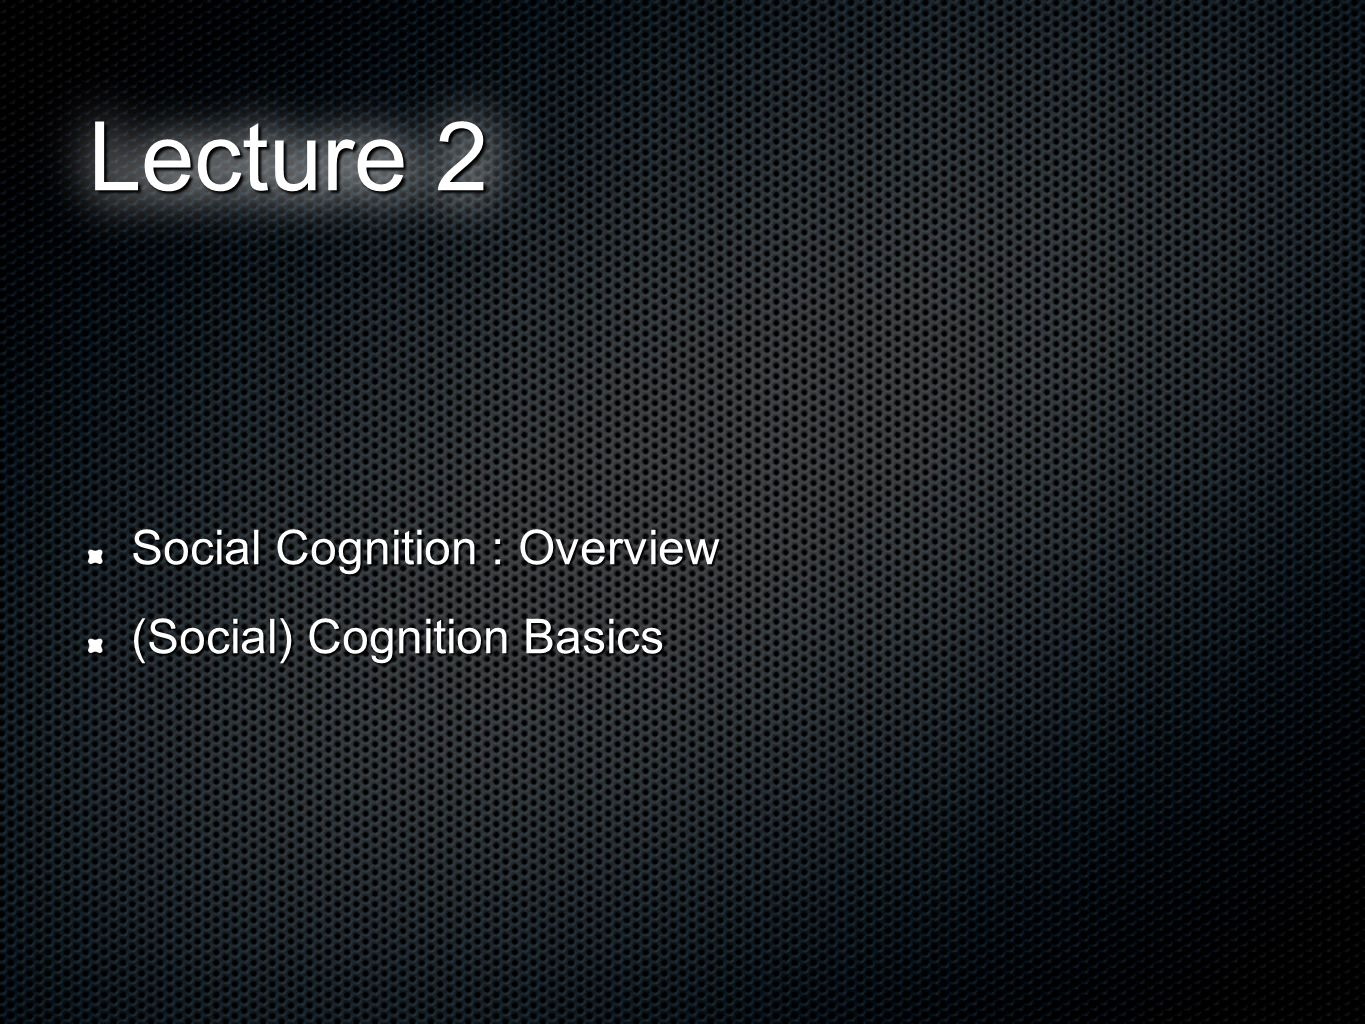 Social Cognition : Overview (Social) Cognition Basics Lecture 2